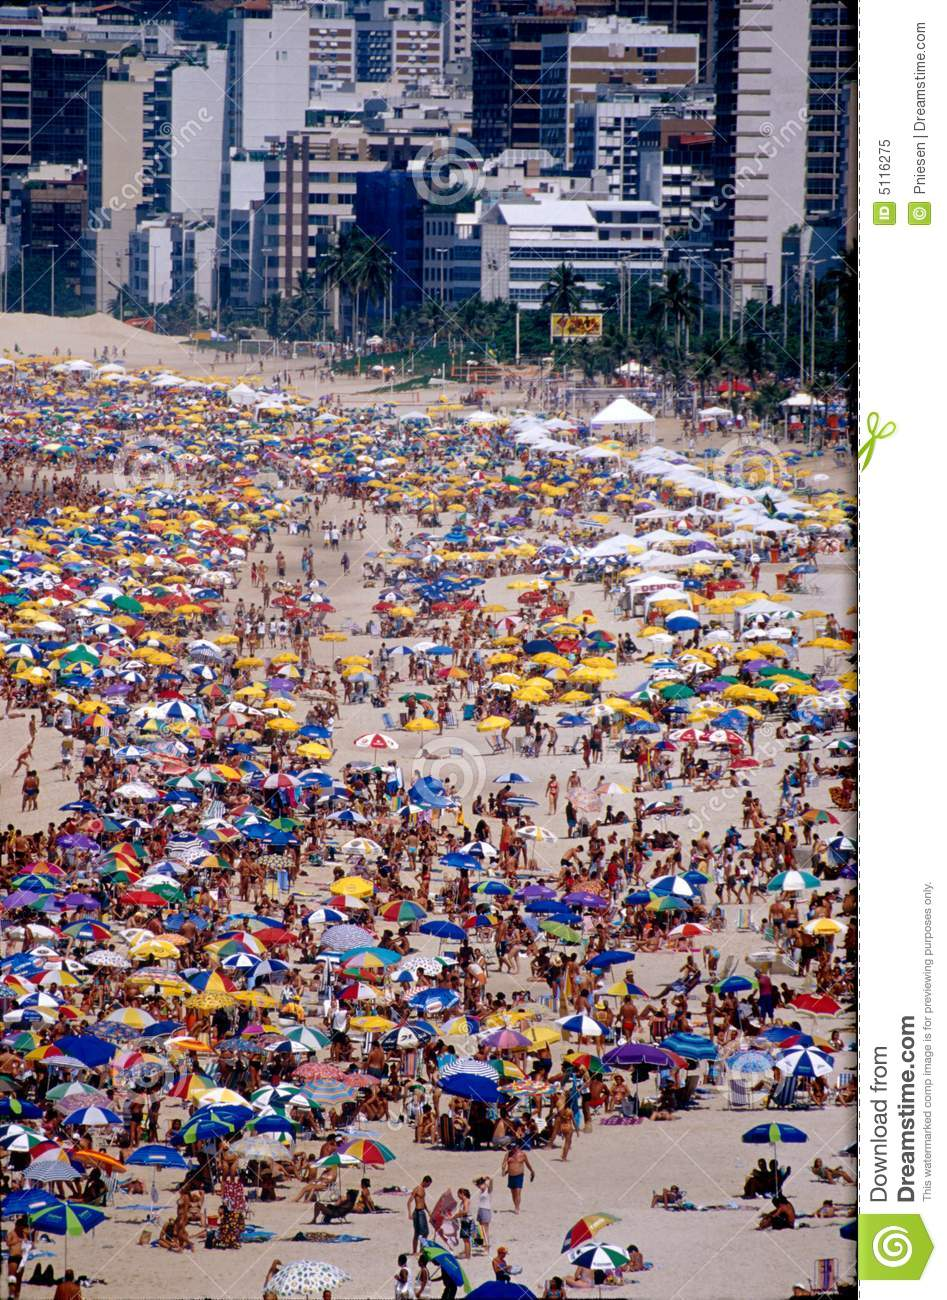 Rio beach & umbrellas during carnival